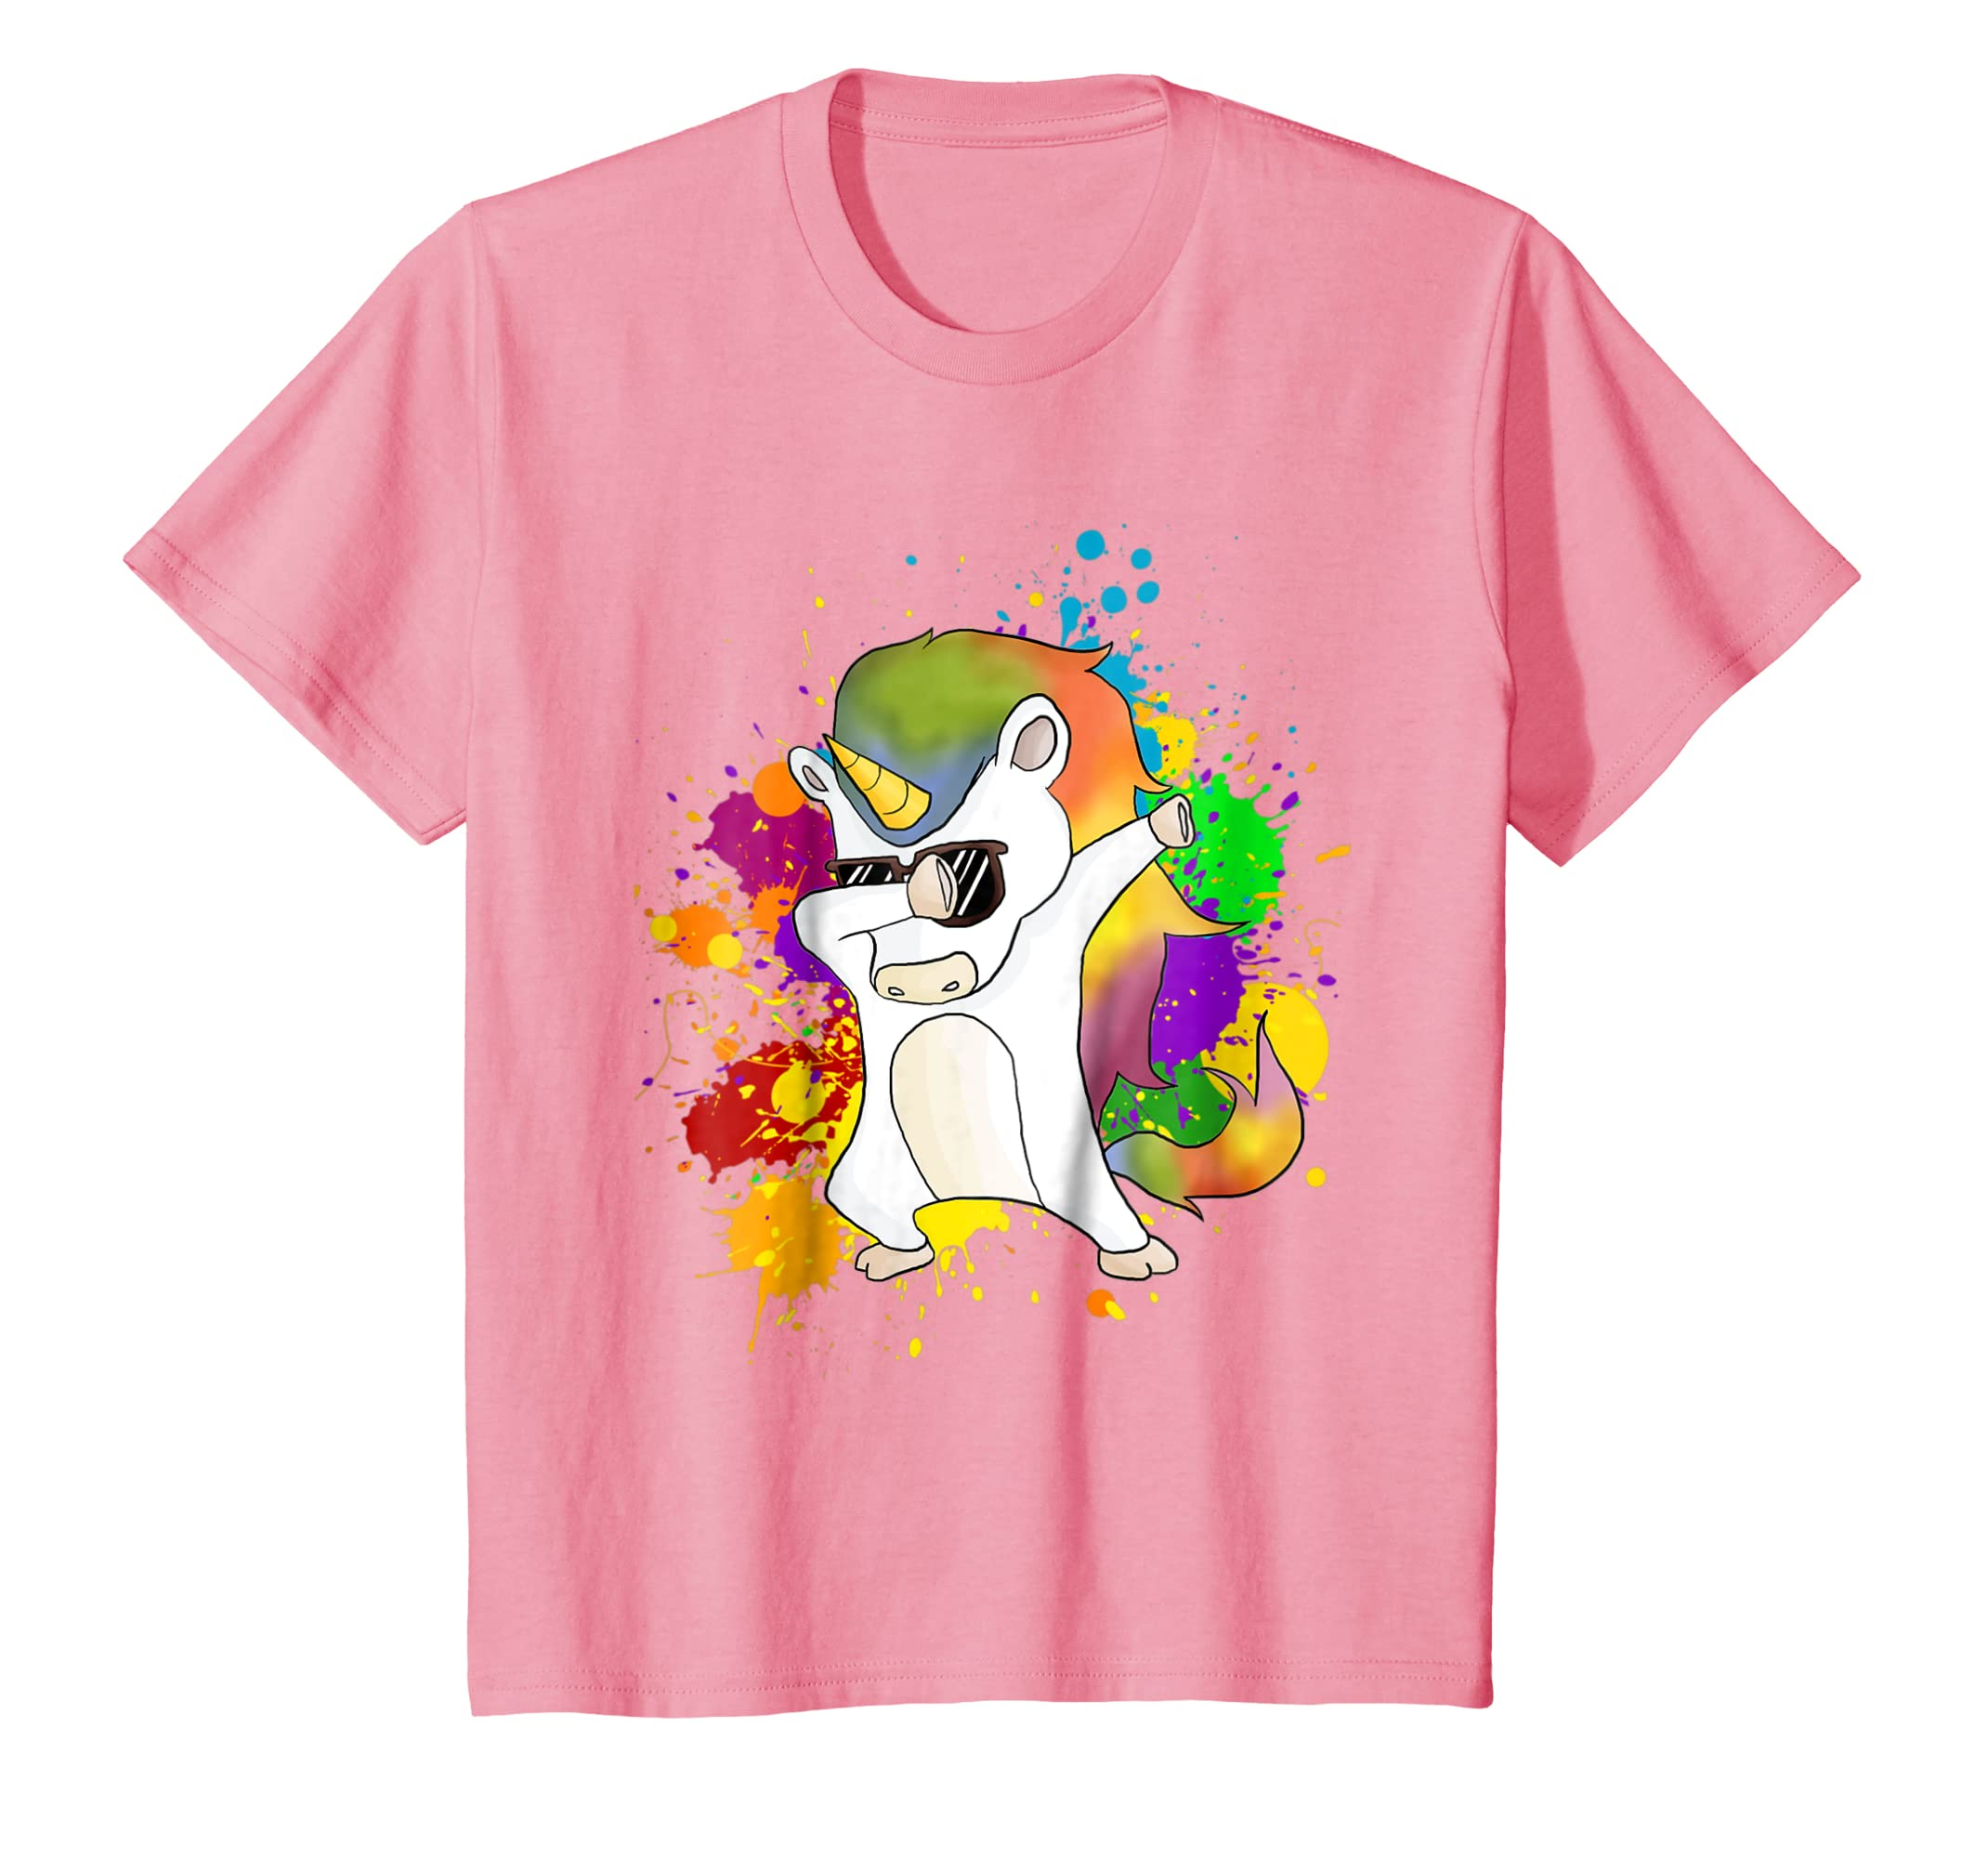 ce786da22ed Amazon.com  Kids Dabbing Unicorn Shirt and Unicorn Dab T-Shirt  Clothing